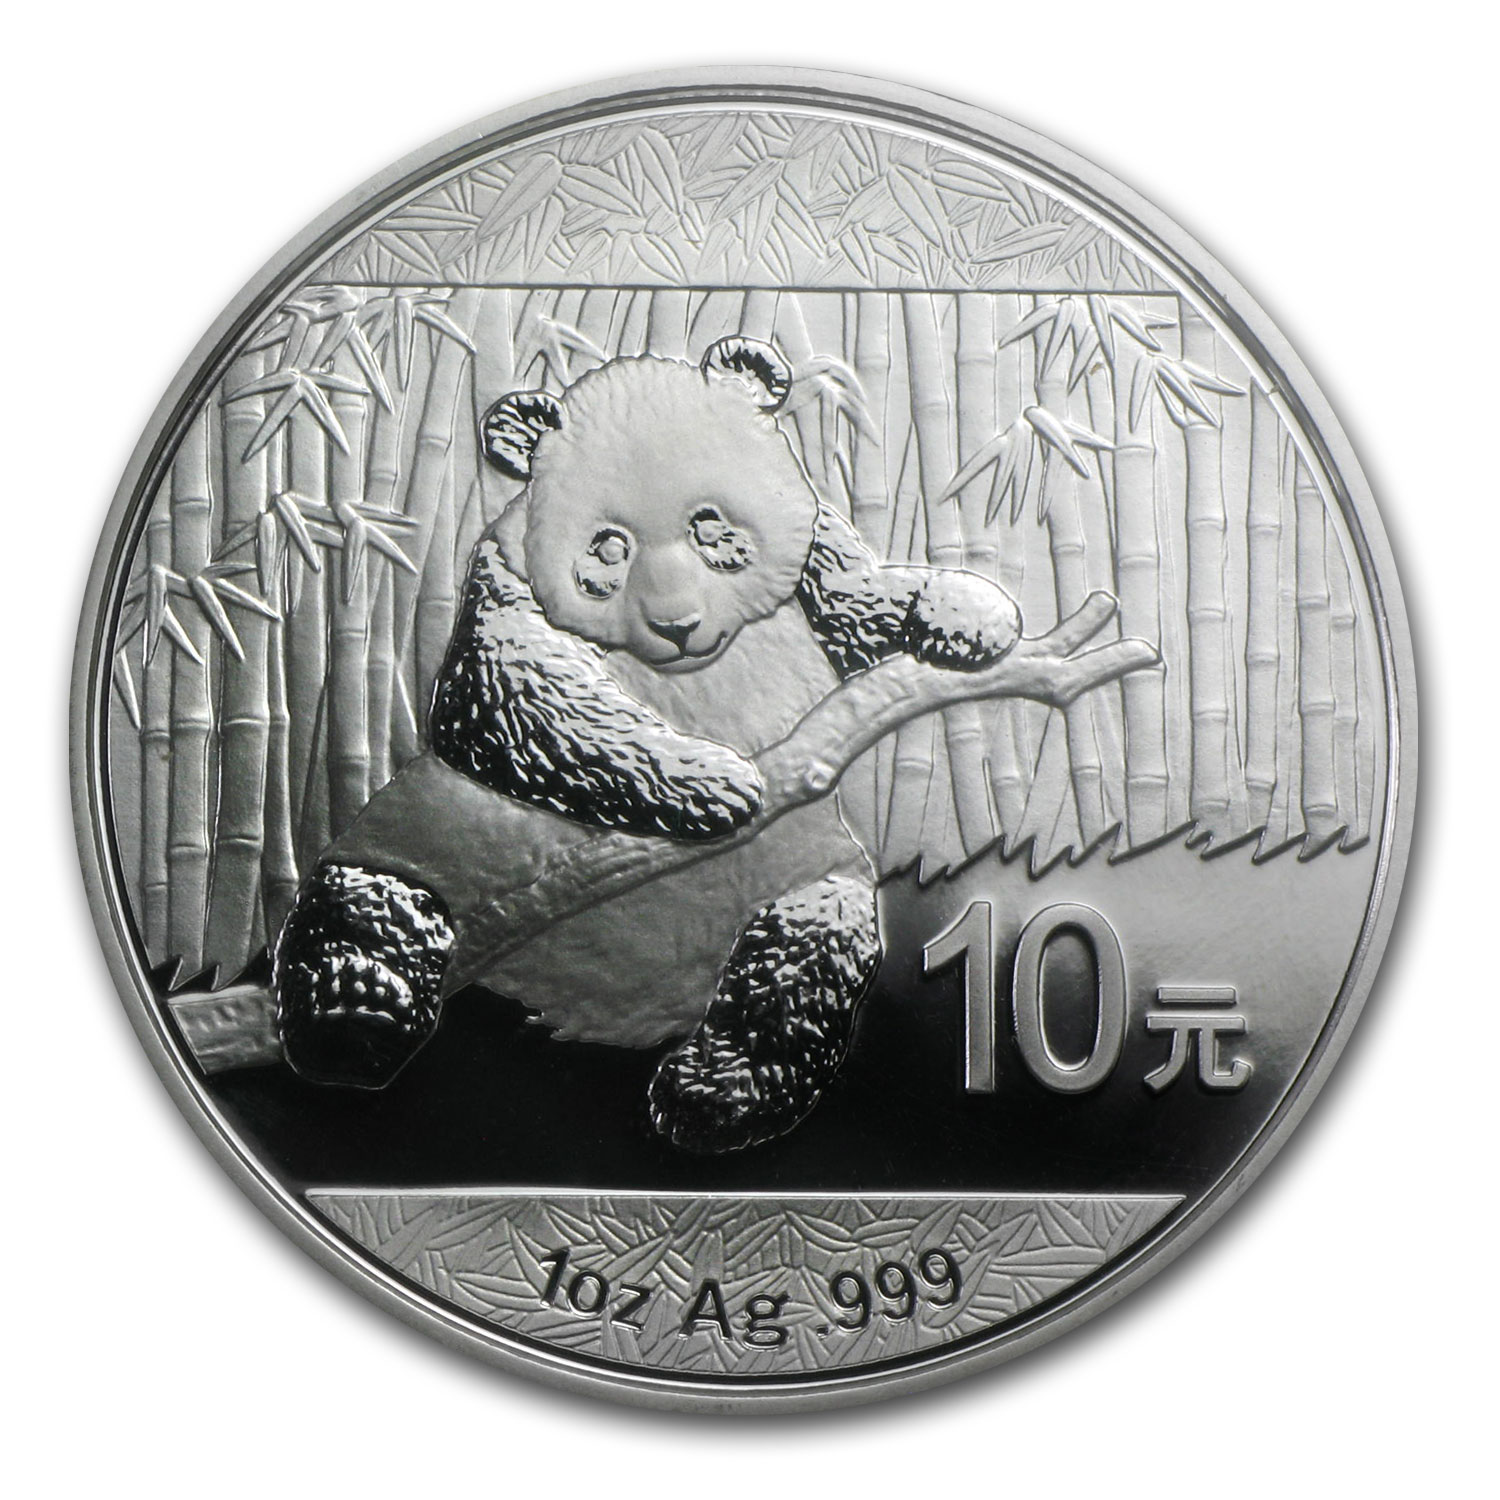 2014 China 1 oz Silver Panda MS-69 PCGS (Gold Label)